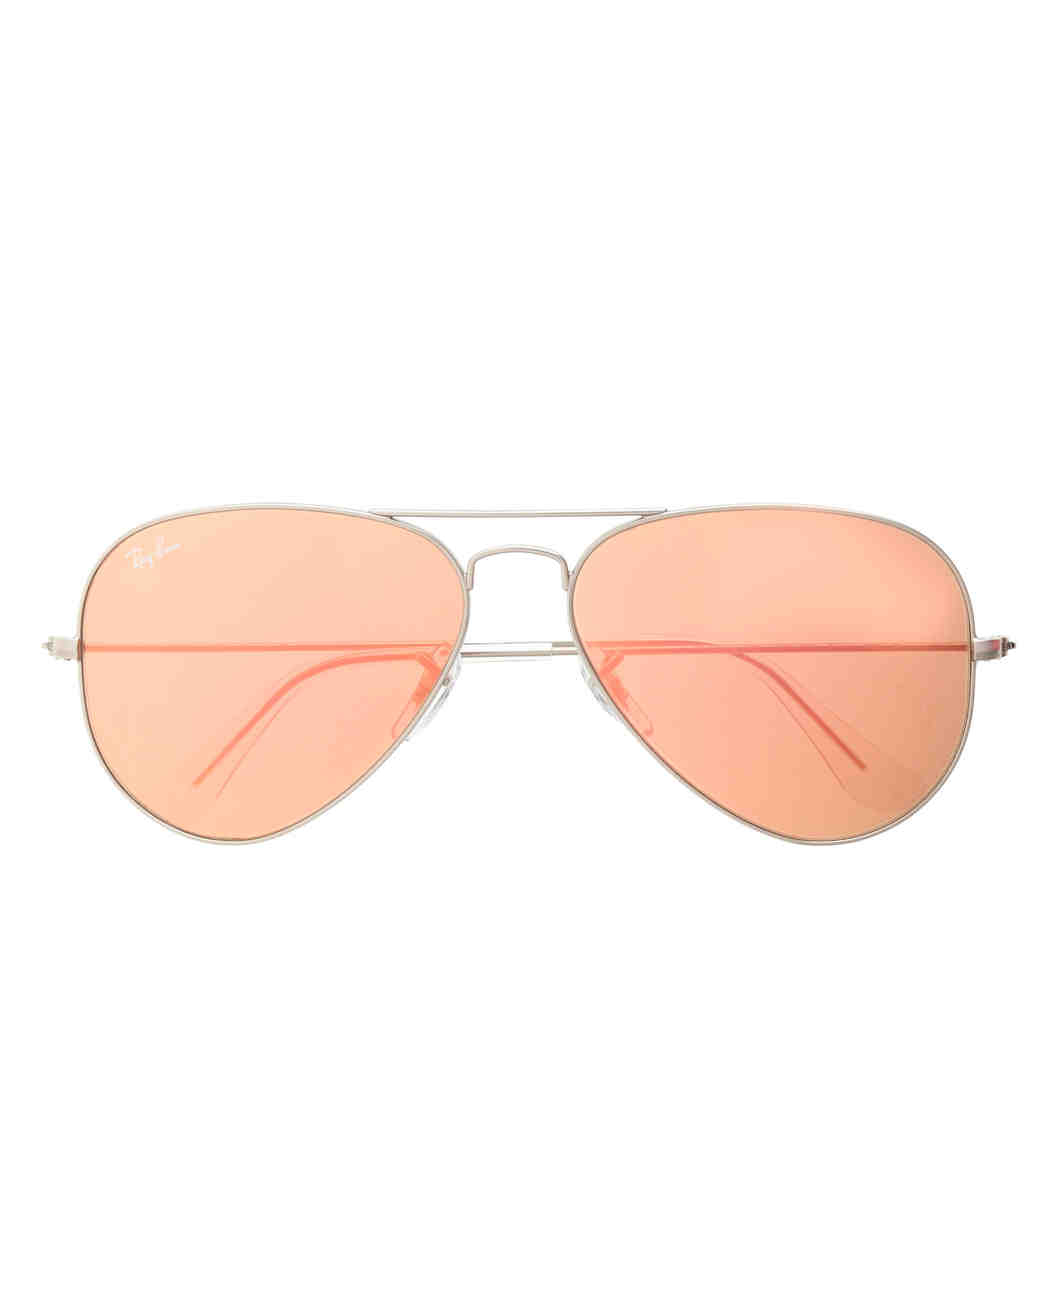 bridesmaid-gifts-ray-ban-sunglasses-jcrew-0914.jpg